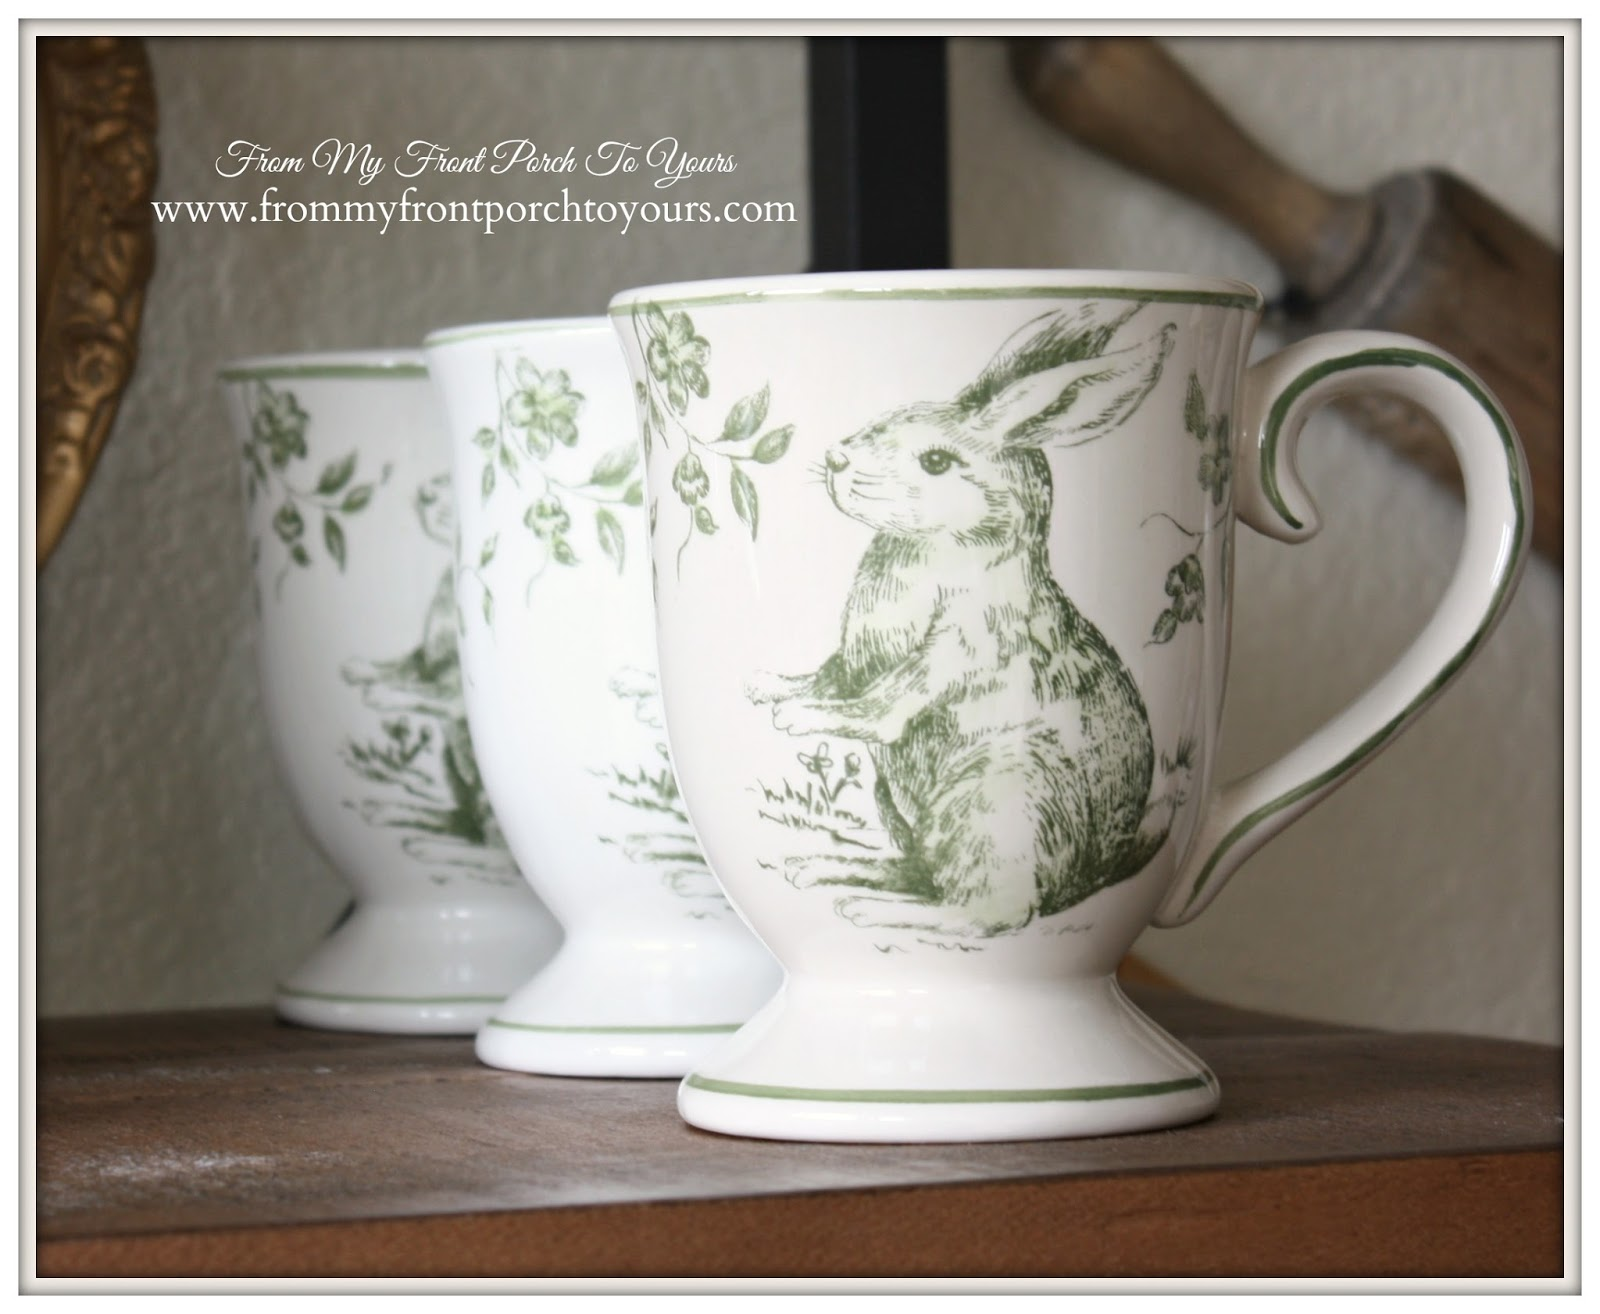 French Farmhouse Spring- Green & White Toile Bunny Mugs- Breakfast Nook- From My Front Porch To Yours